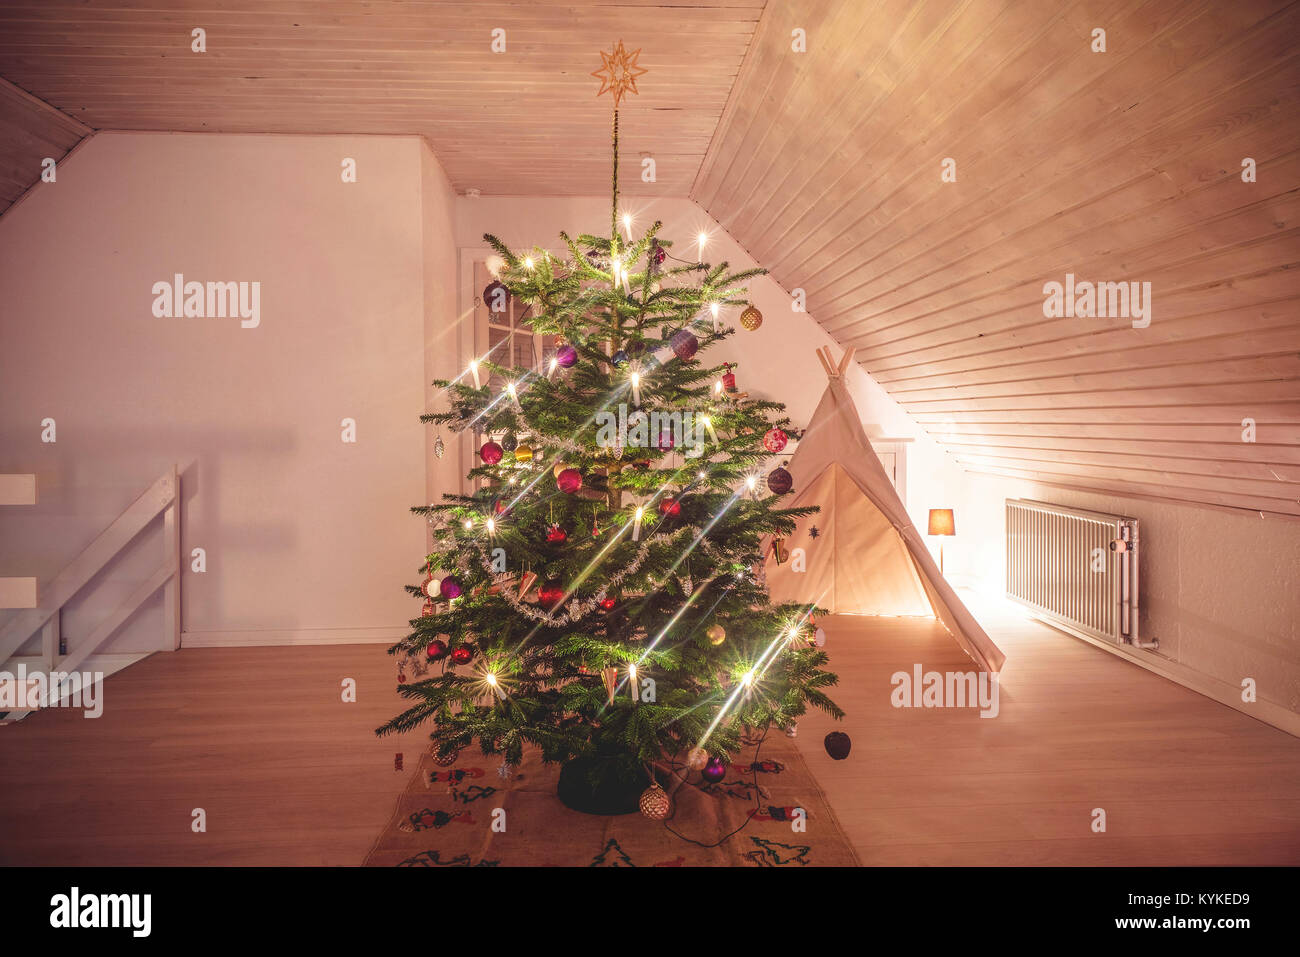 Christmas tree with glittering lights in a living room in the holidays decorated with baubles and a tent in the - Stock Image